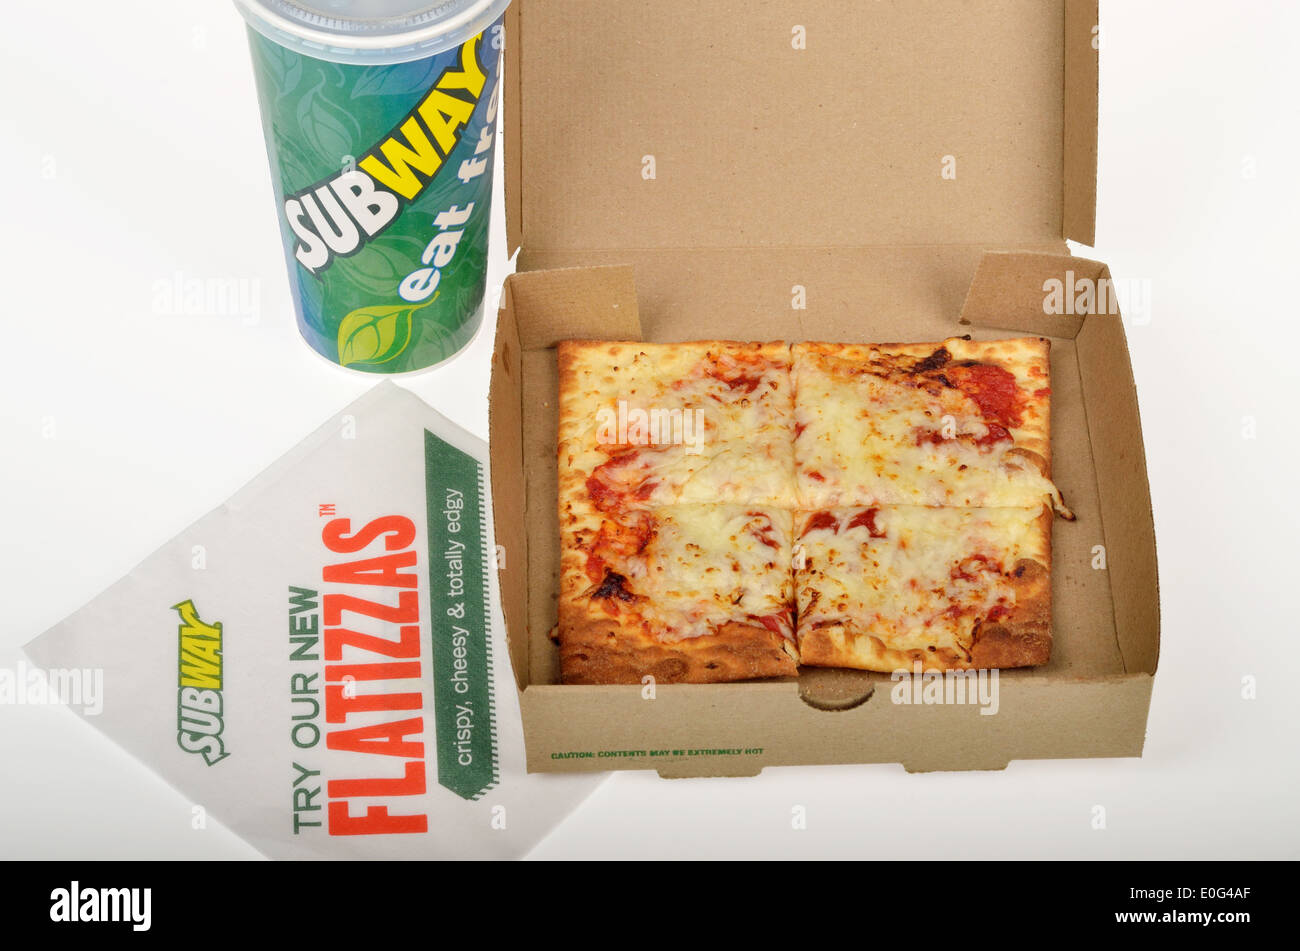 subway fast food flatizza cheese square pizza in box packaging with